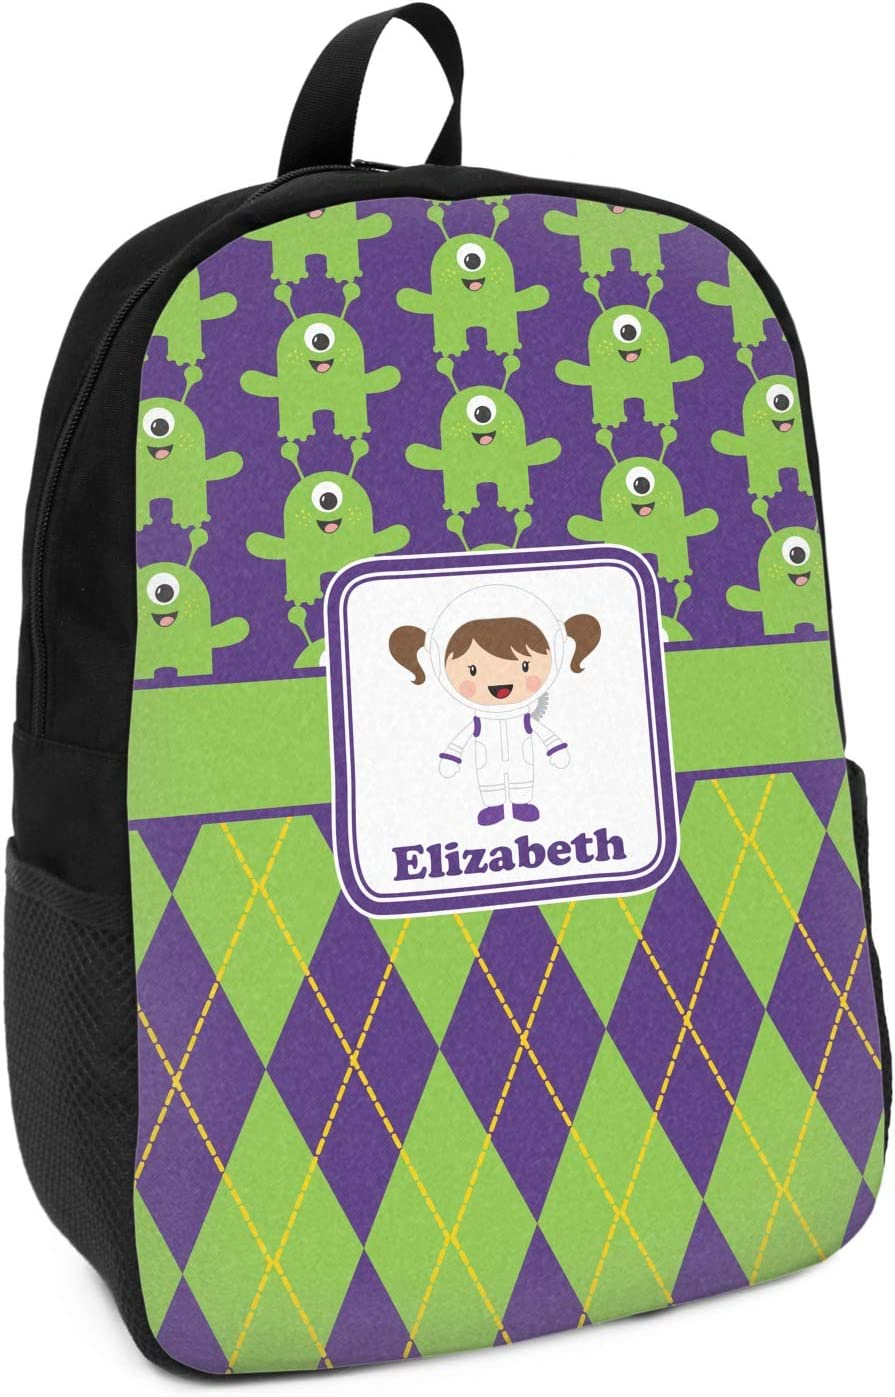 Astronaut Aliens /& Argyle Kids Backpack Personalized